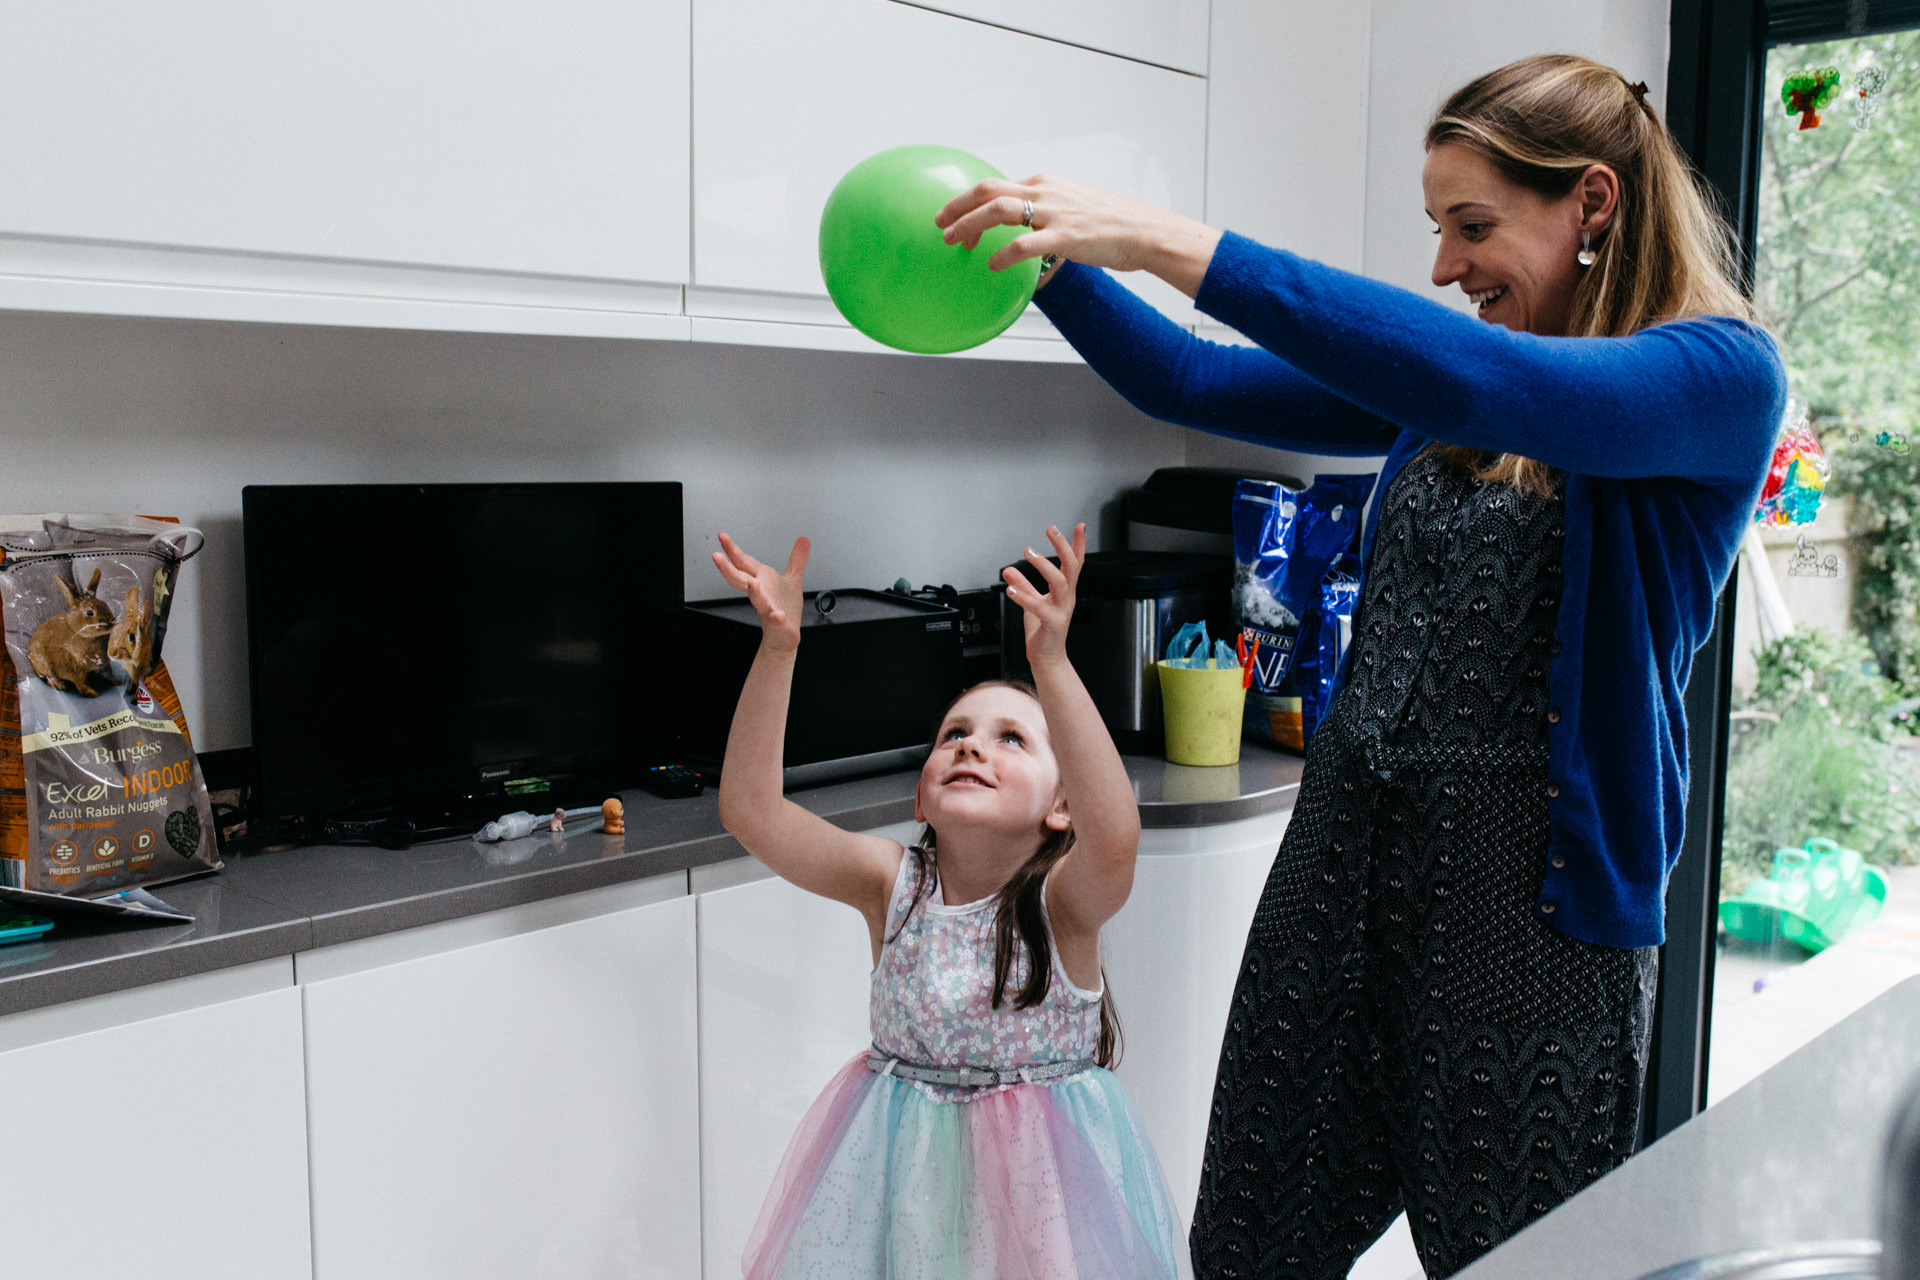 Mother and daughter playing with balloon during family photoshoot